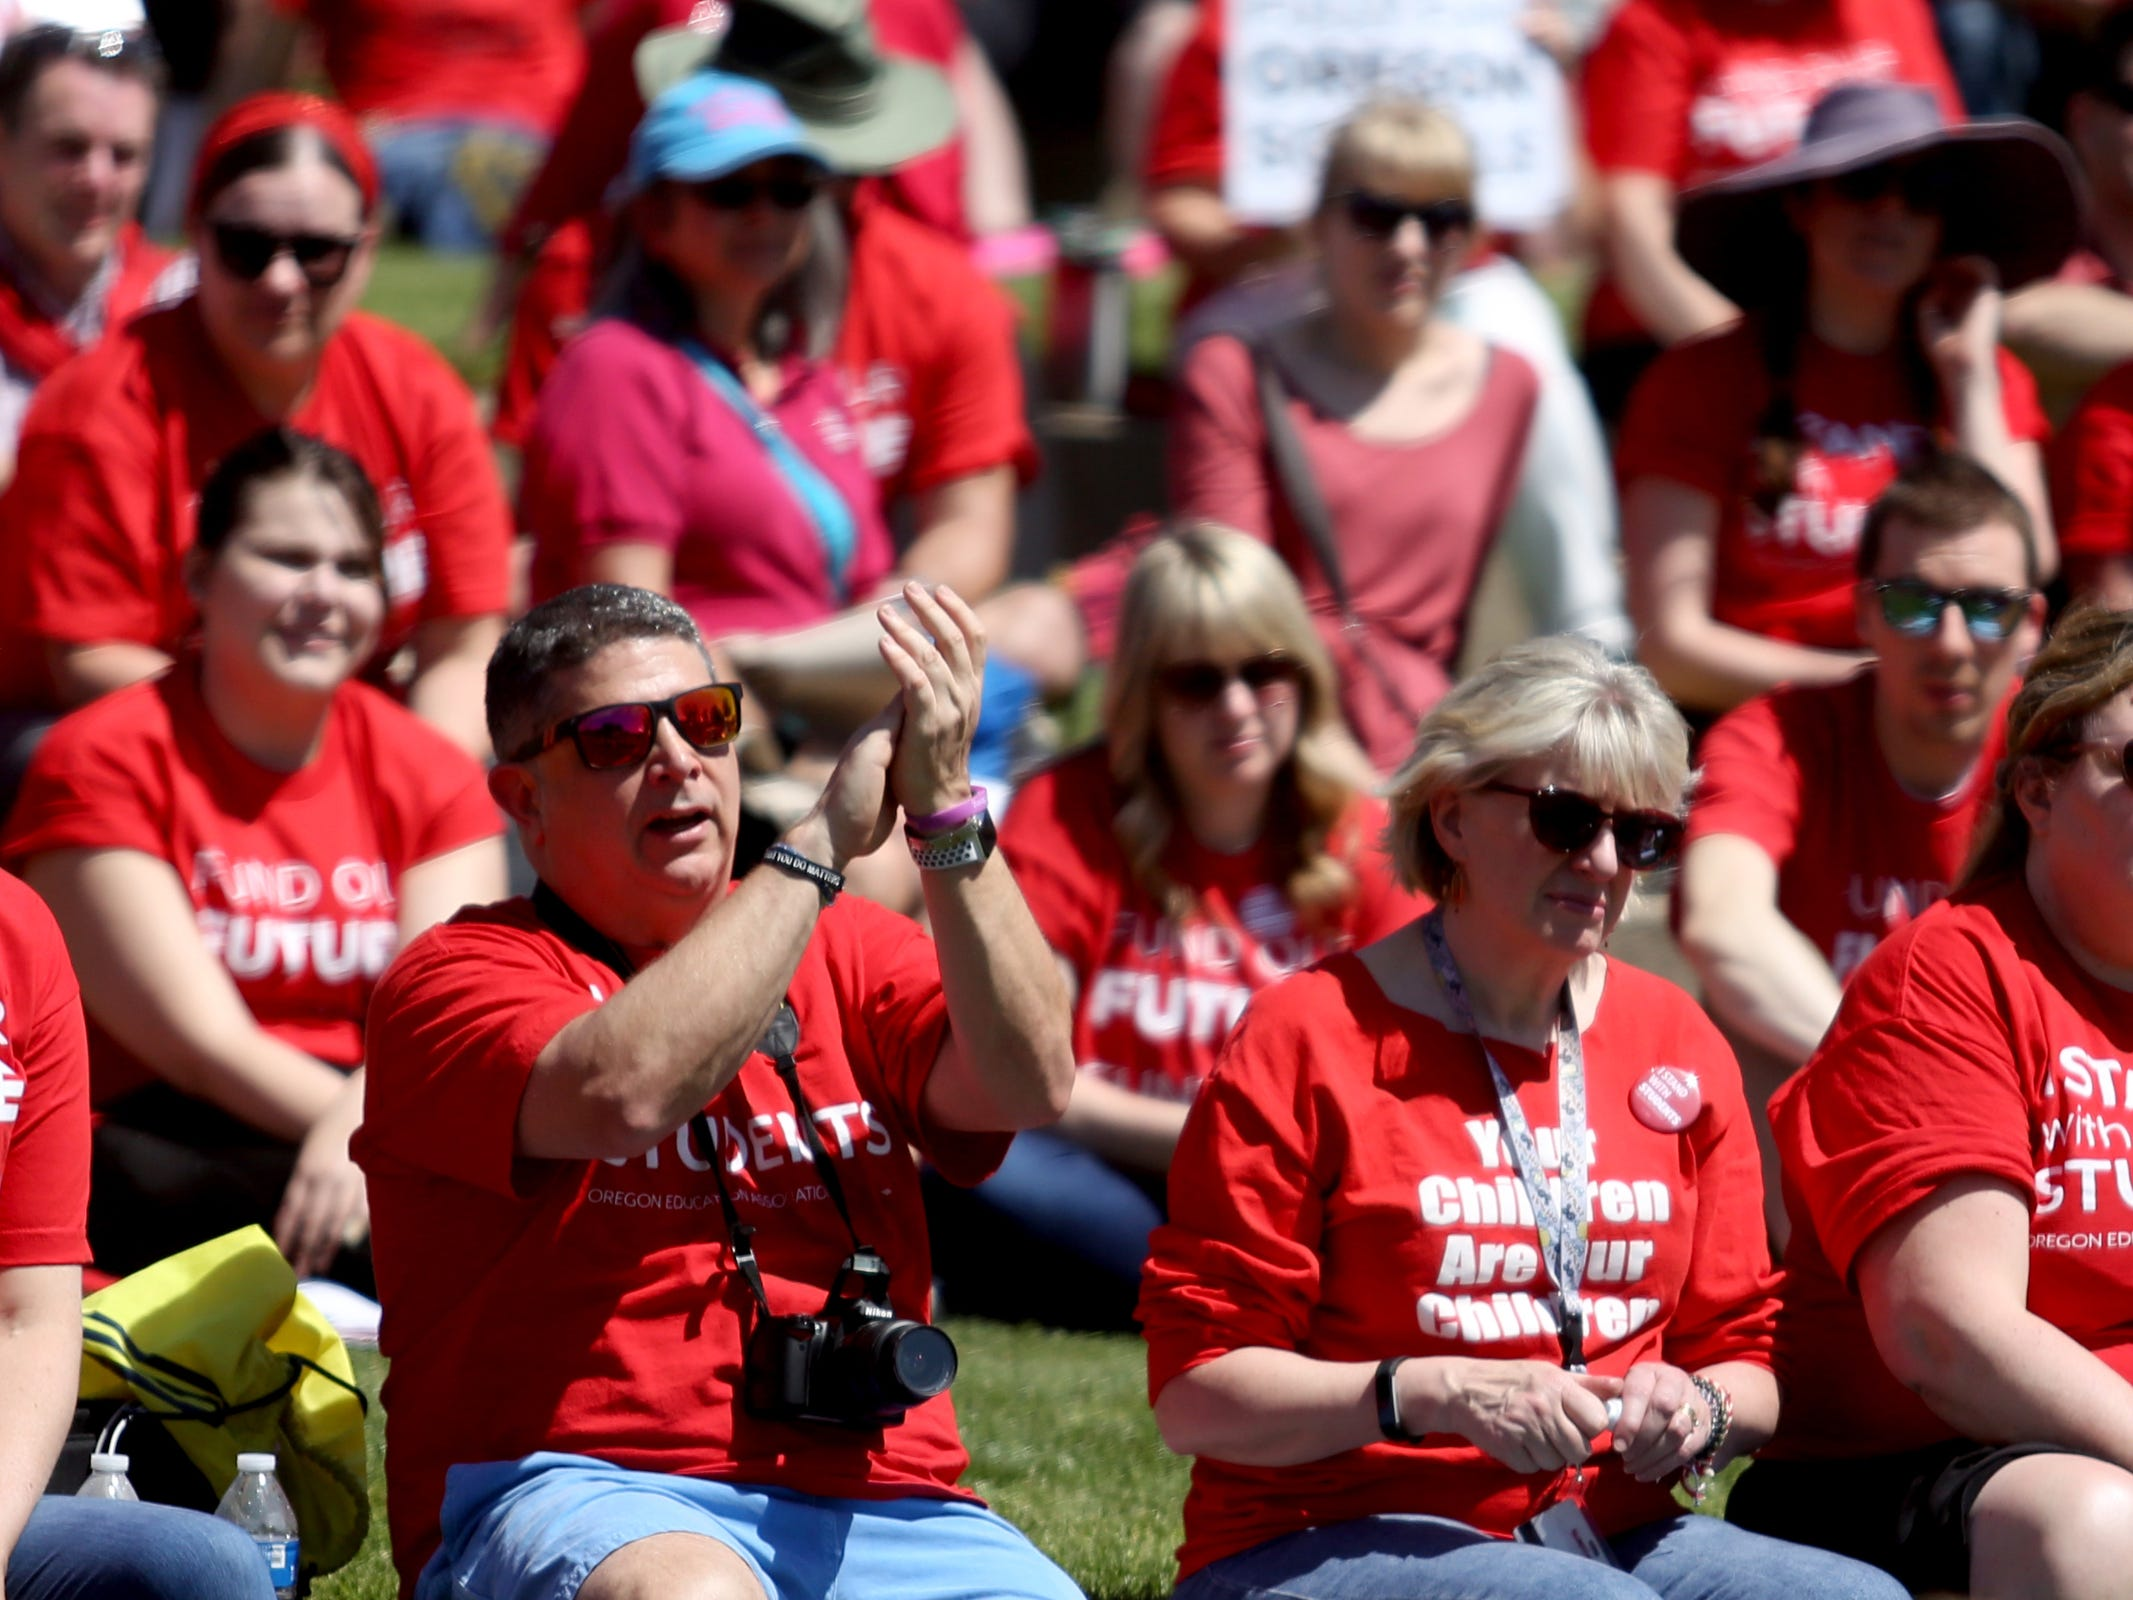 Robert Glasgow, a South Salem High School Spanish teacher cheers as thousands of teachers and education activists rally for a day of action starting at Riverfront Park in Salem on May 8, 2019. Schools across Oregon closed early or were closed for the day as teachers walked out to demand more school funding to address large class sizes, low graduation rates and other concerns.